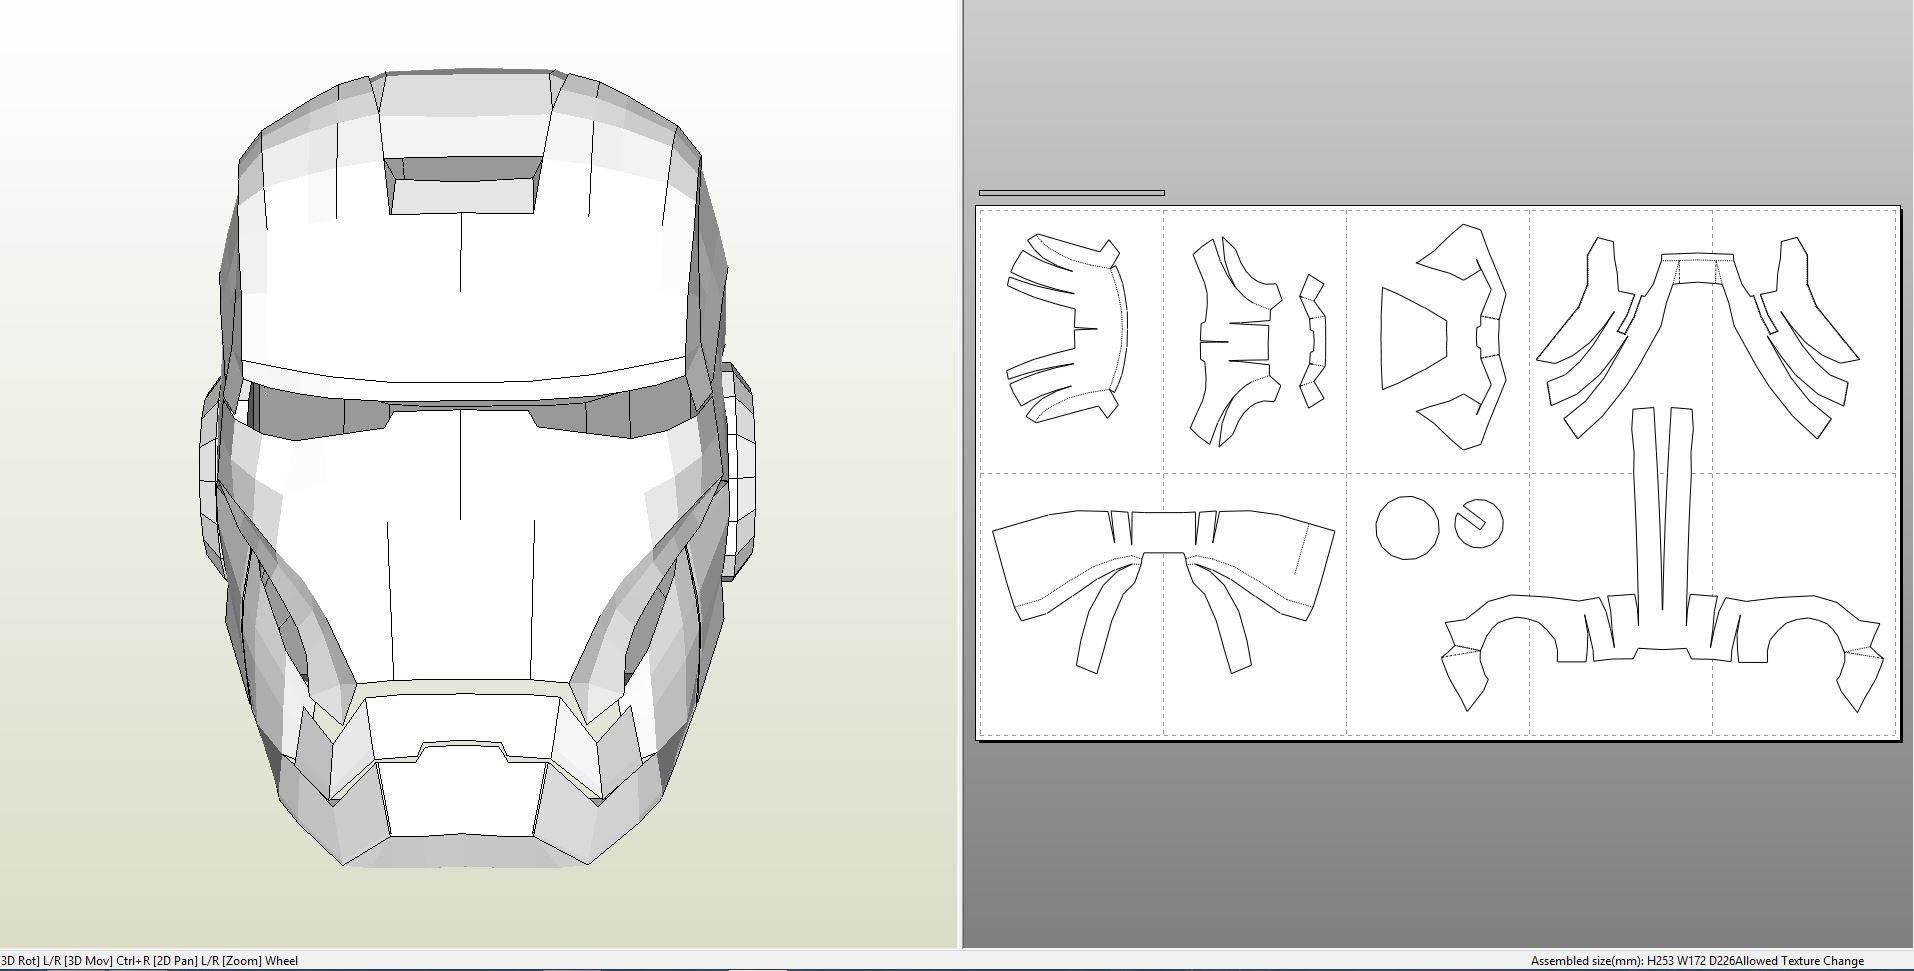 Foamcraft Pdo File Template For Iron Man Mark 7 Full Armor Foam